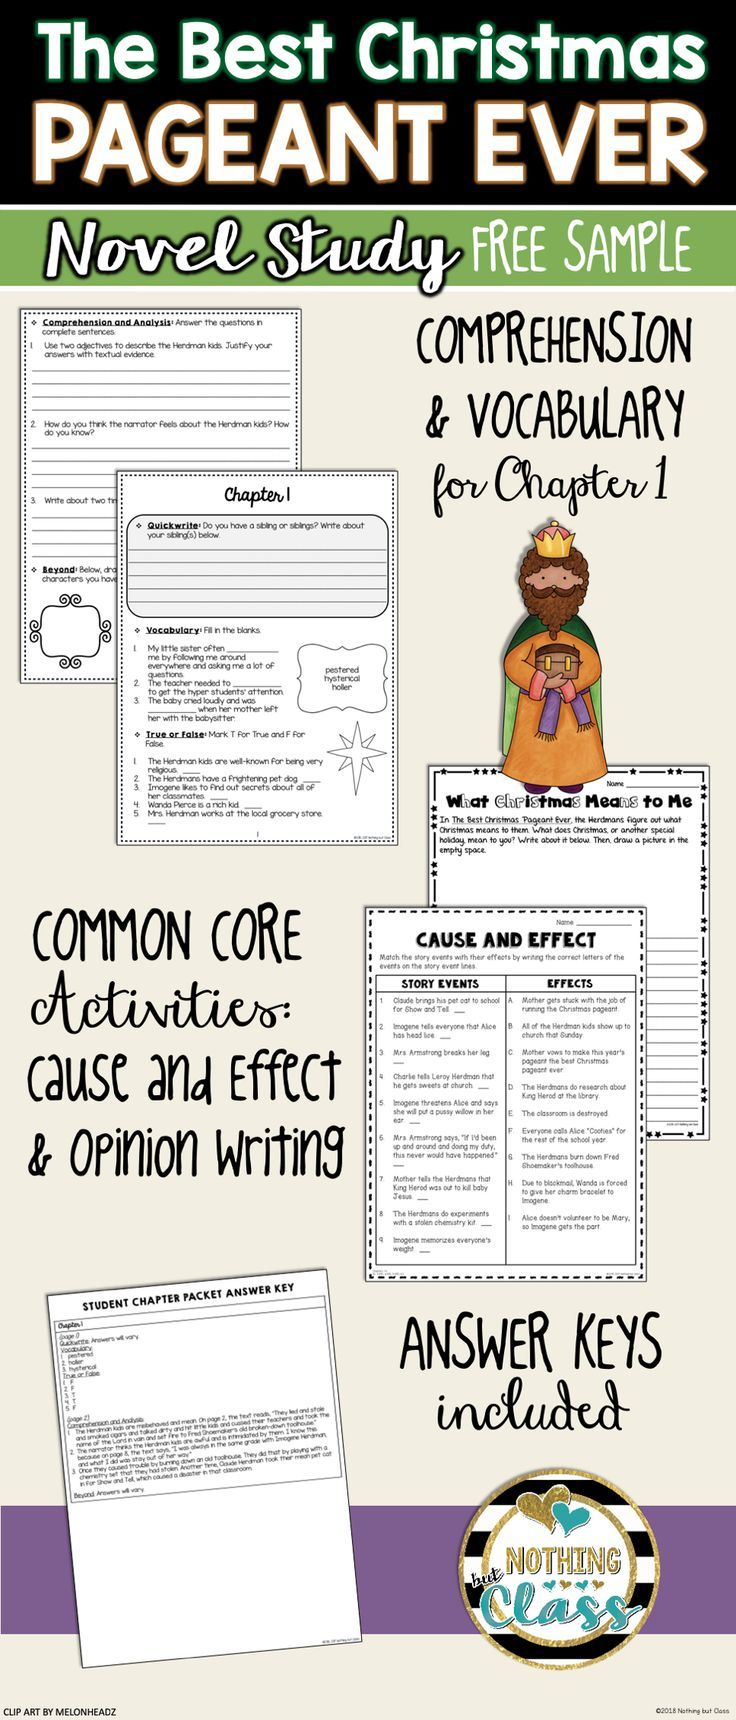 The Best Christmas Pageant Ever Novel Study Unit: FREE Sample ...